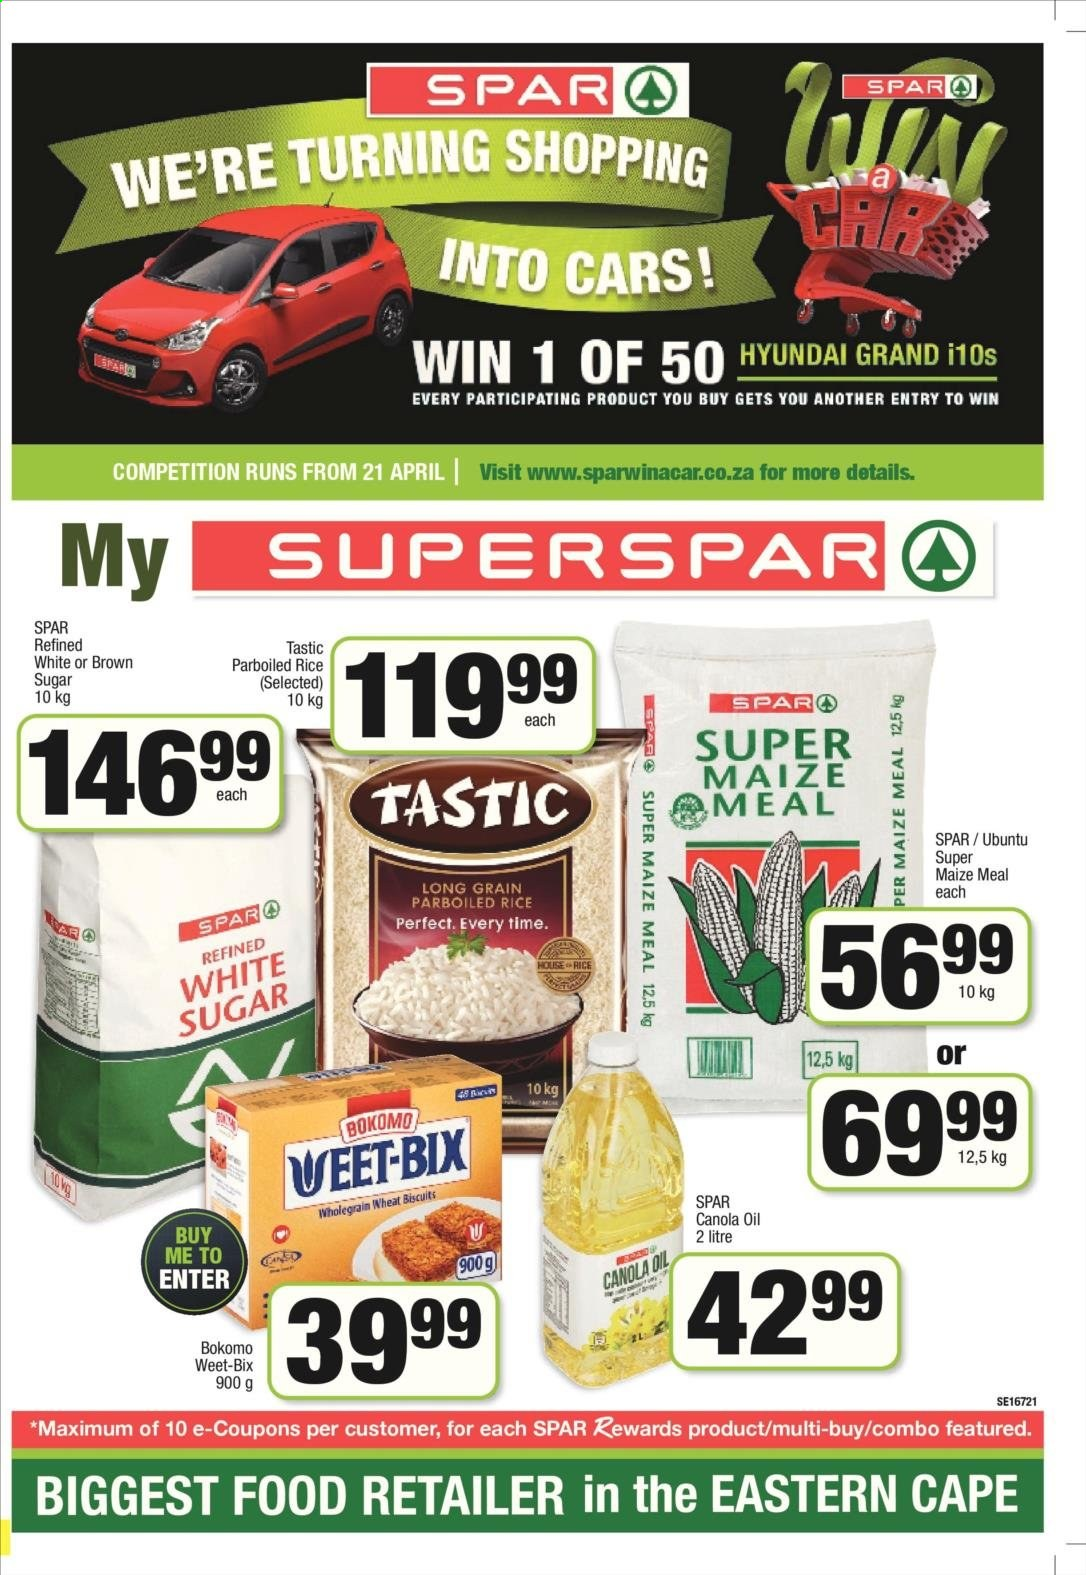 SPAR catalogue  - 04.21.2020 - 05.03.2020. Page 1.